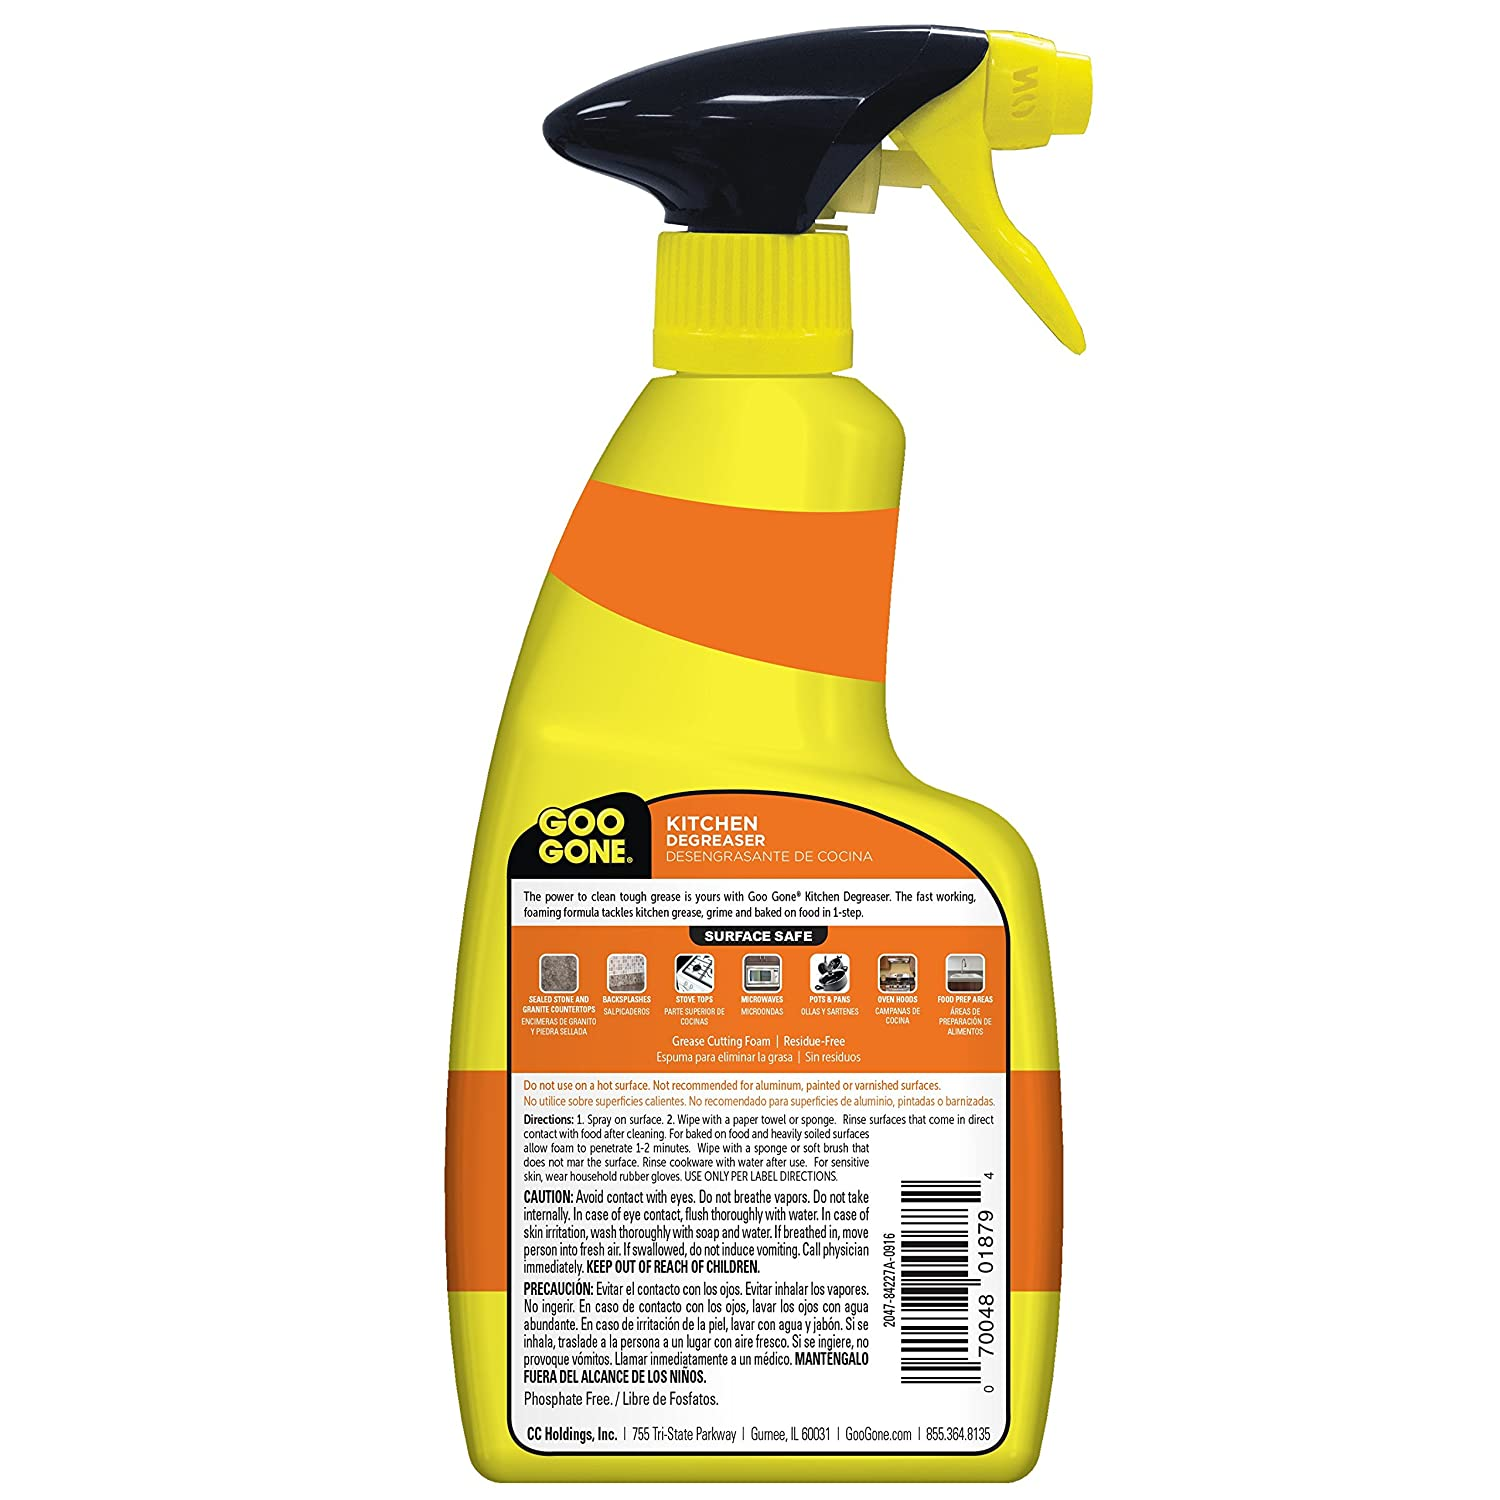 Goo Gone Kitchen Degreaser 2047, 14 fl oz, 1: Amazon.es: Salud y ...